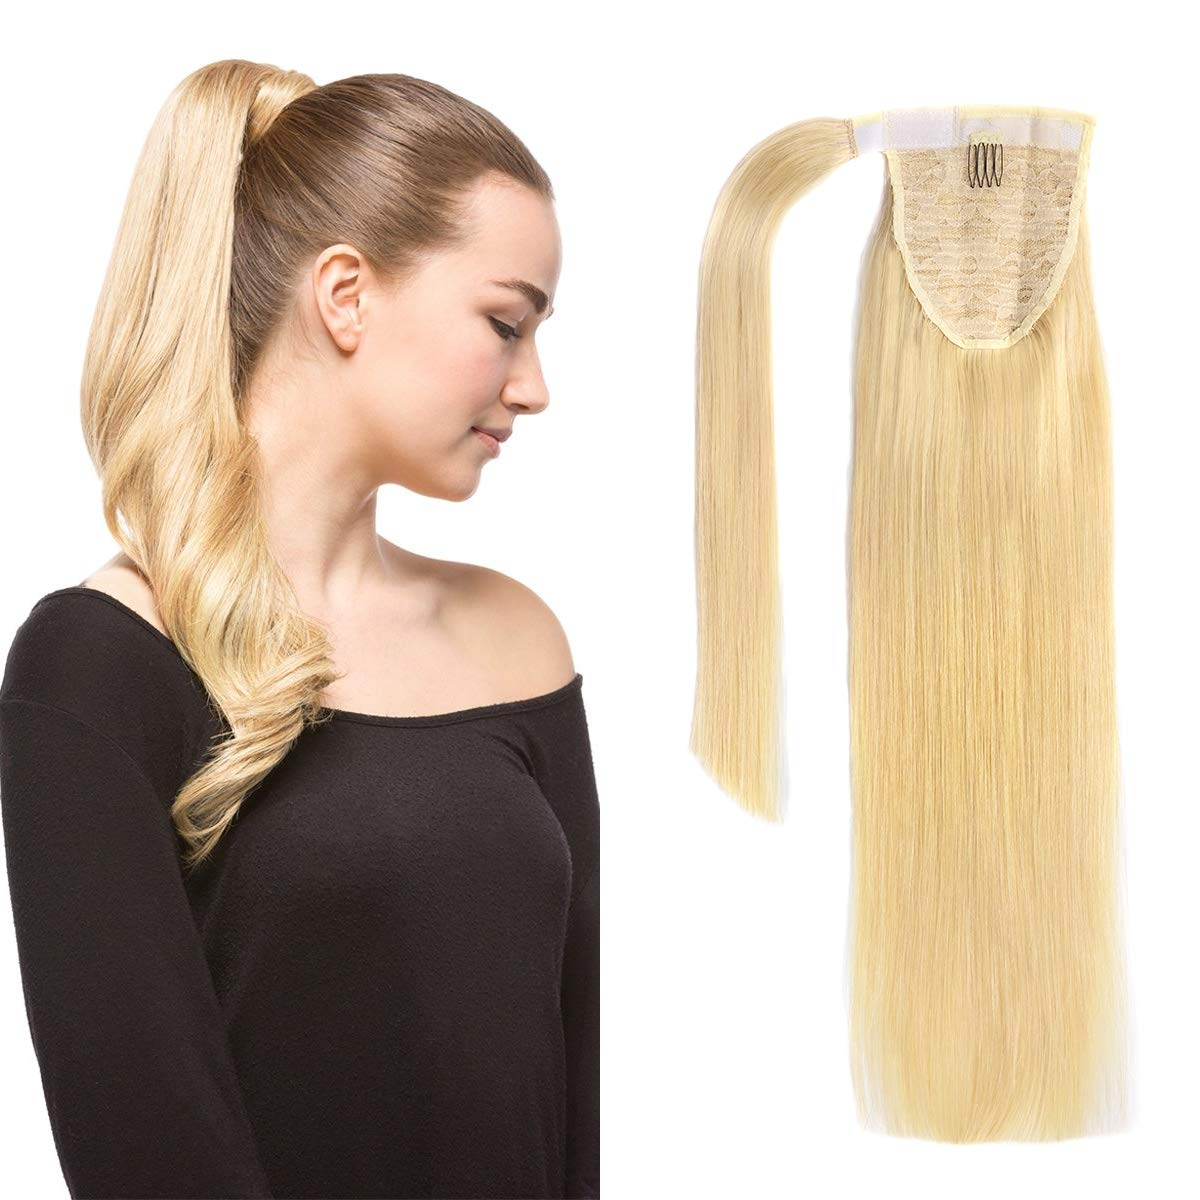 14 Inches Clip in Human Ponytail Hair Extensions Remy Human Hair Piece for Women 1 Piece Hairpiece 60 Grams Wrap Around Ponytail Human Hair Extensions Light Blonde Color by isheeny